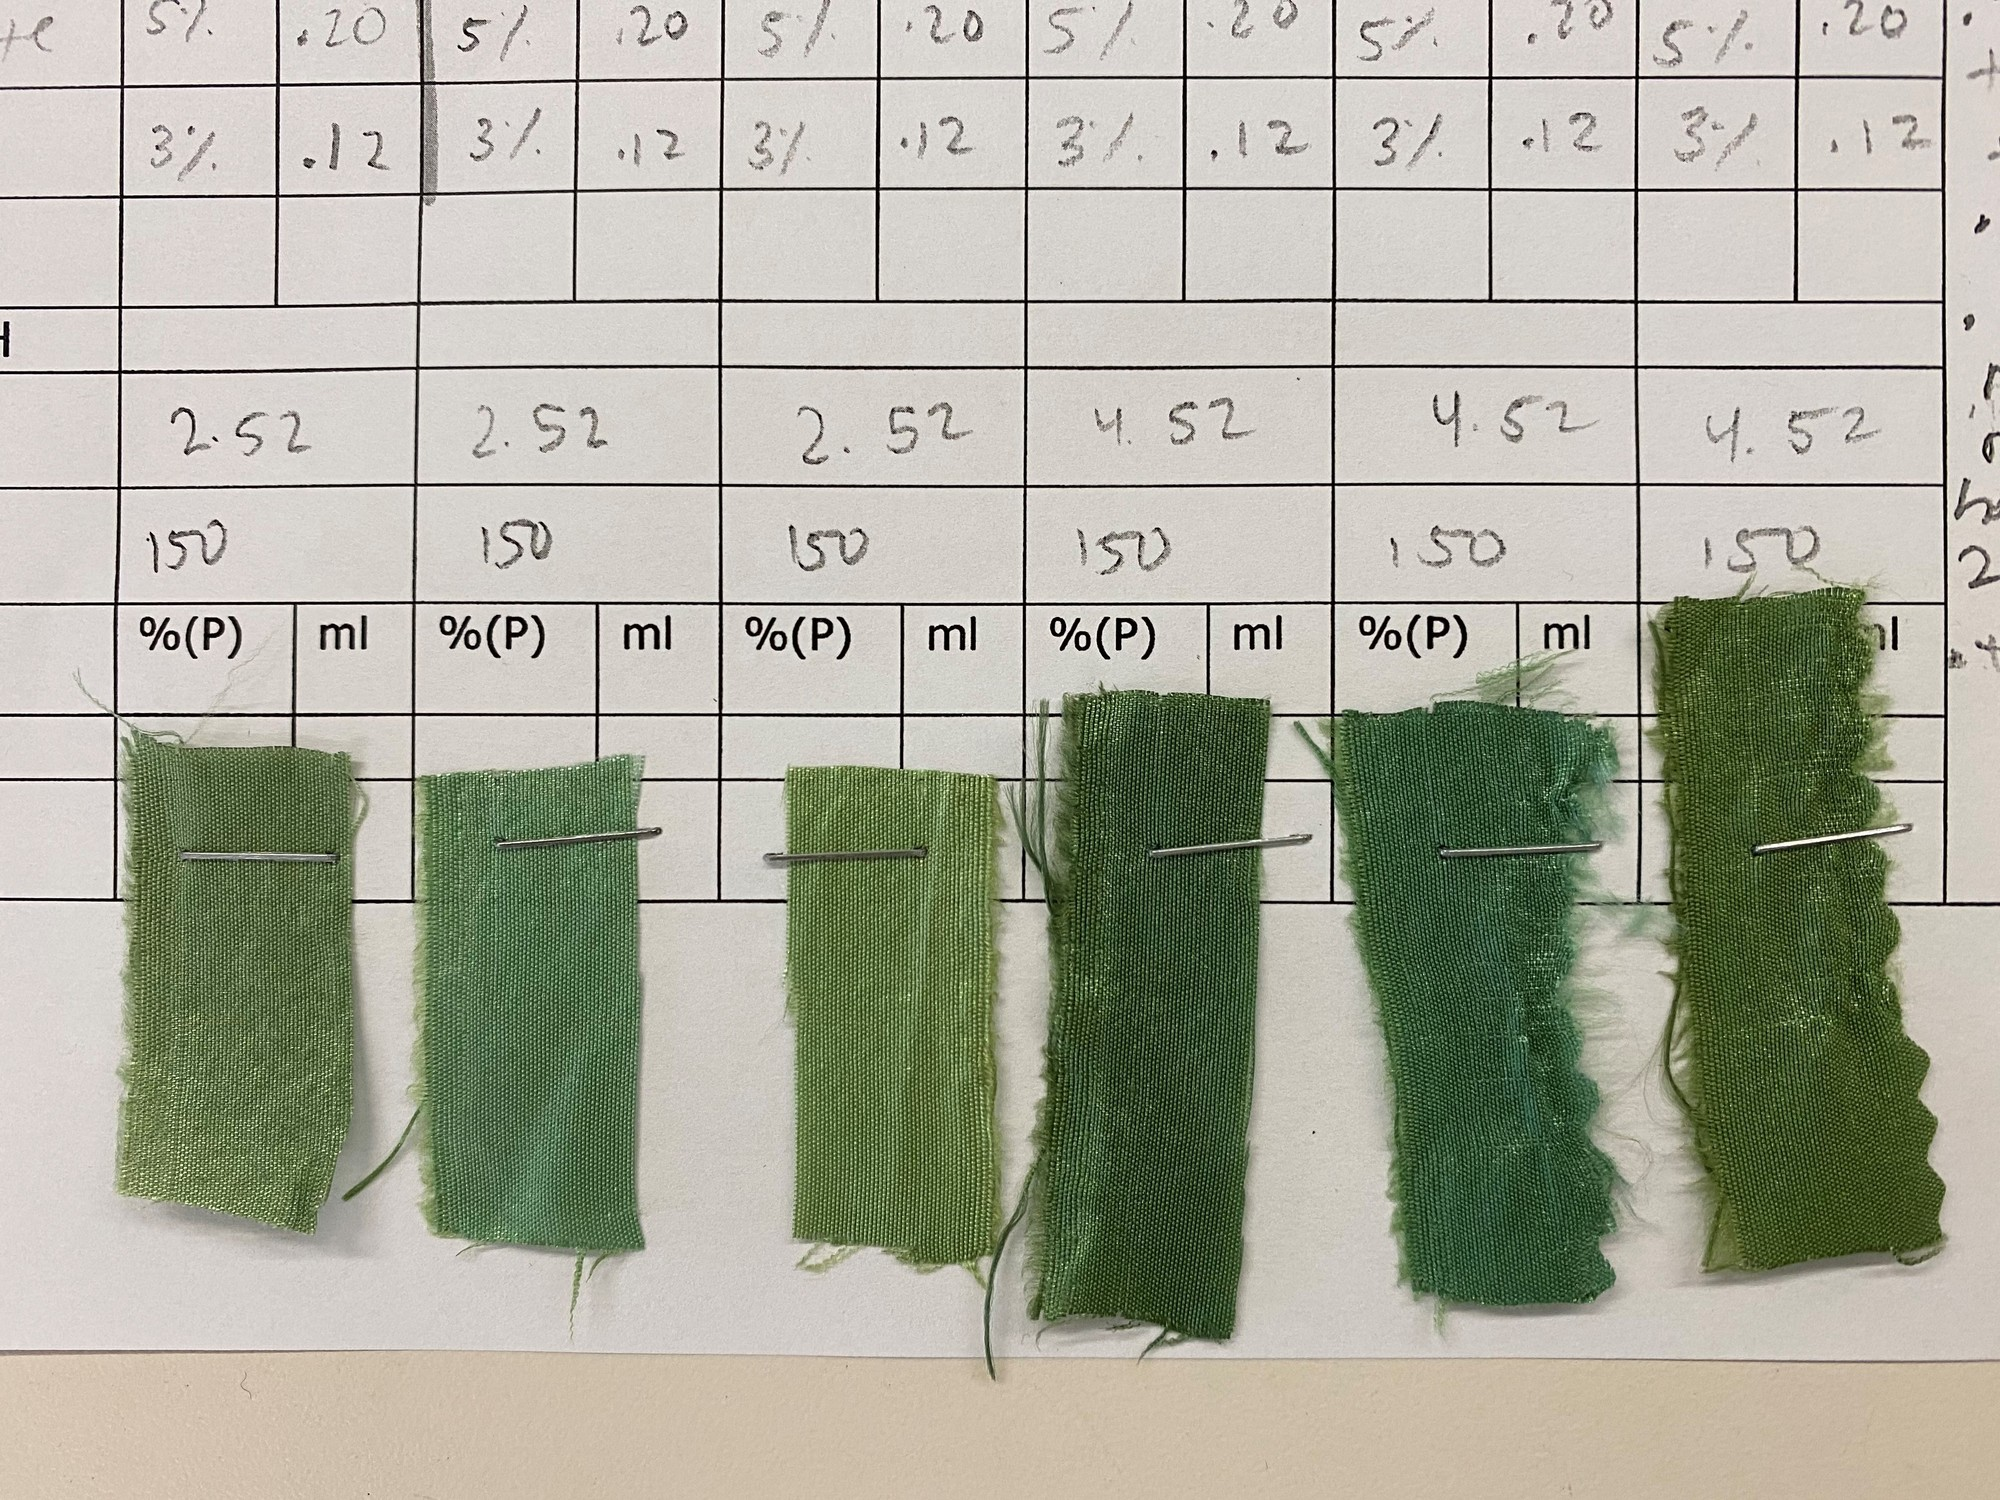 Different strips of silk with various calculations about the dyes used on them